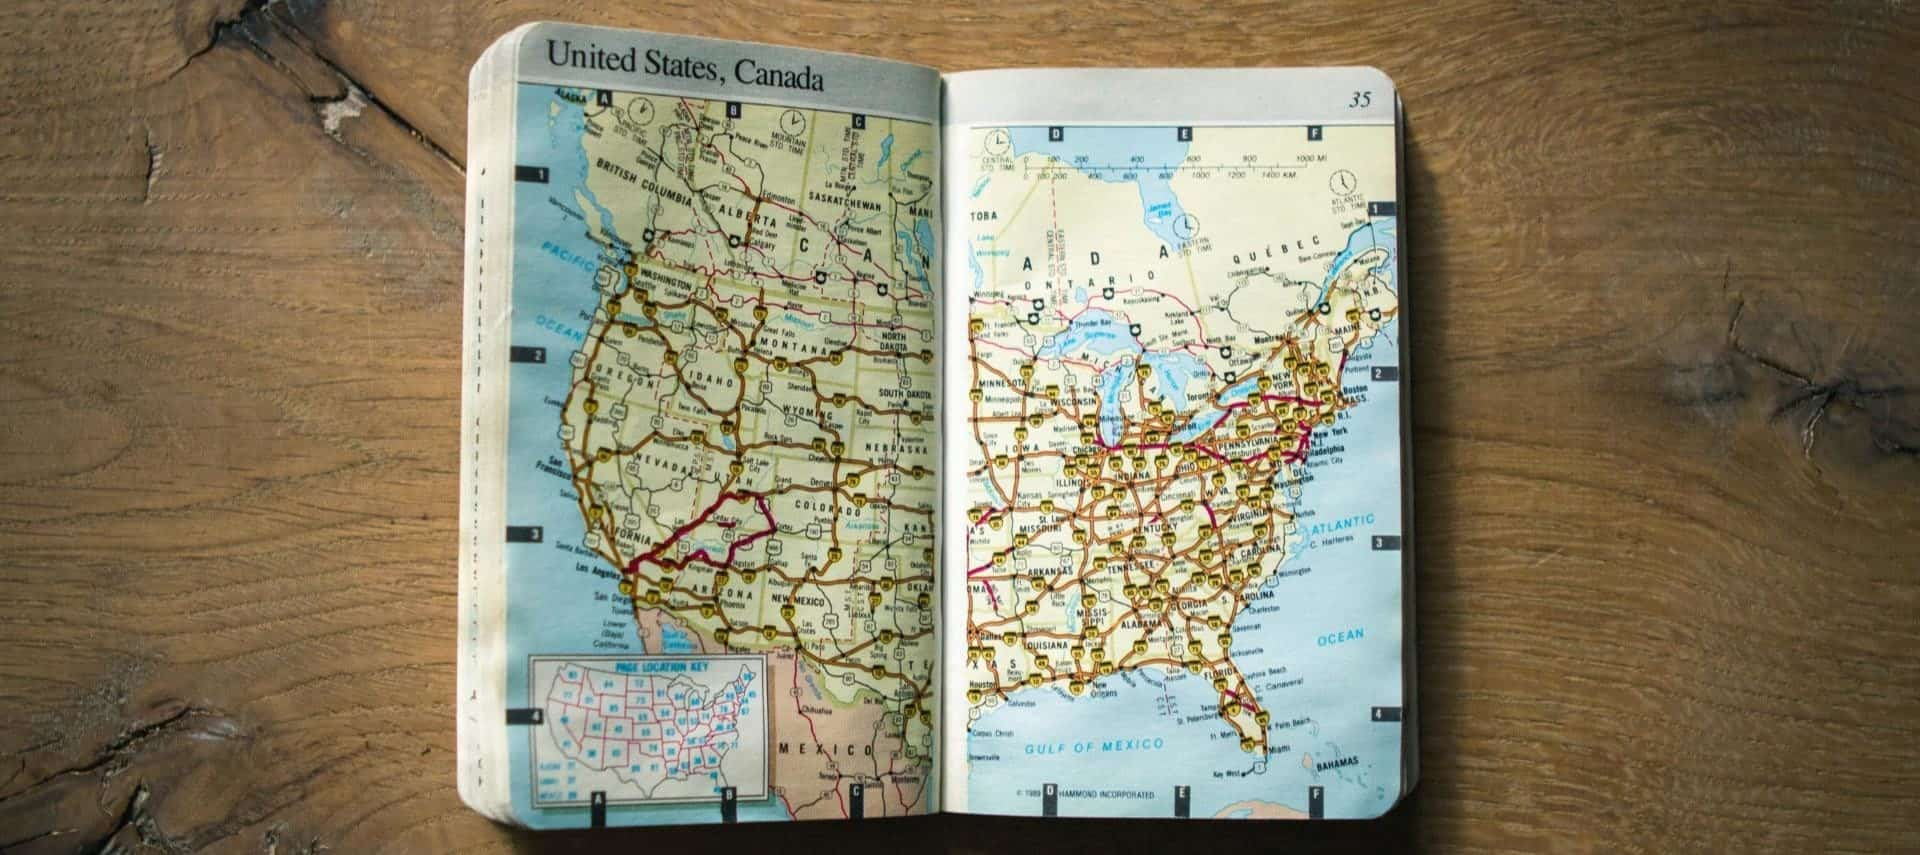 Small book with a map of the United States and part of Canada